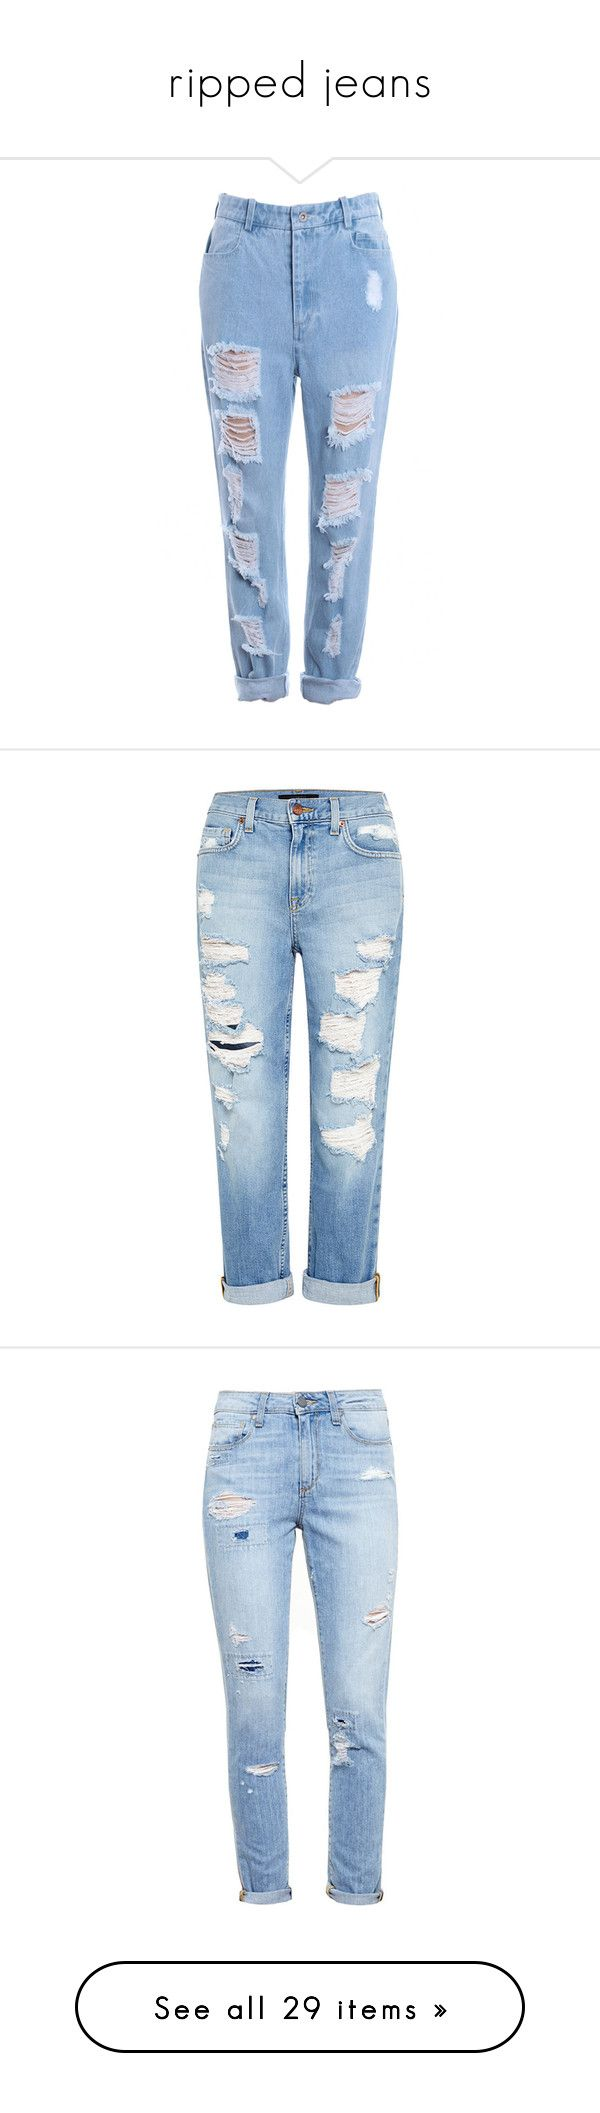 """ripped jeans"" by amy-lopezx ❤ liked on Polyvore featuring jeans, pants, bottoms, romwe, light blue ripped jeans, destruction jeans, torn jeans, blue jeans, destructed jeans and calças"